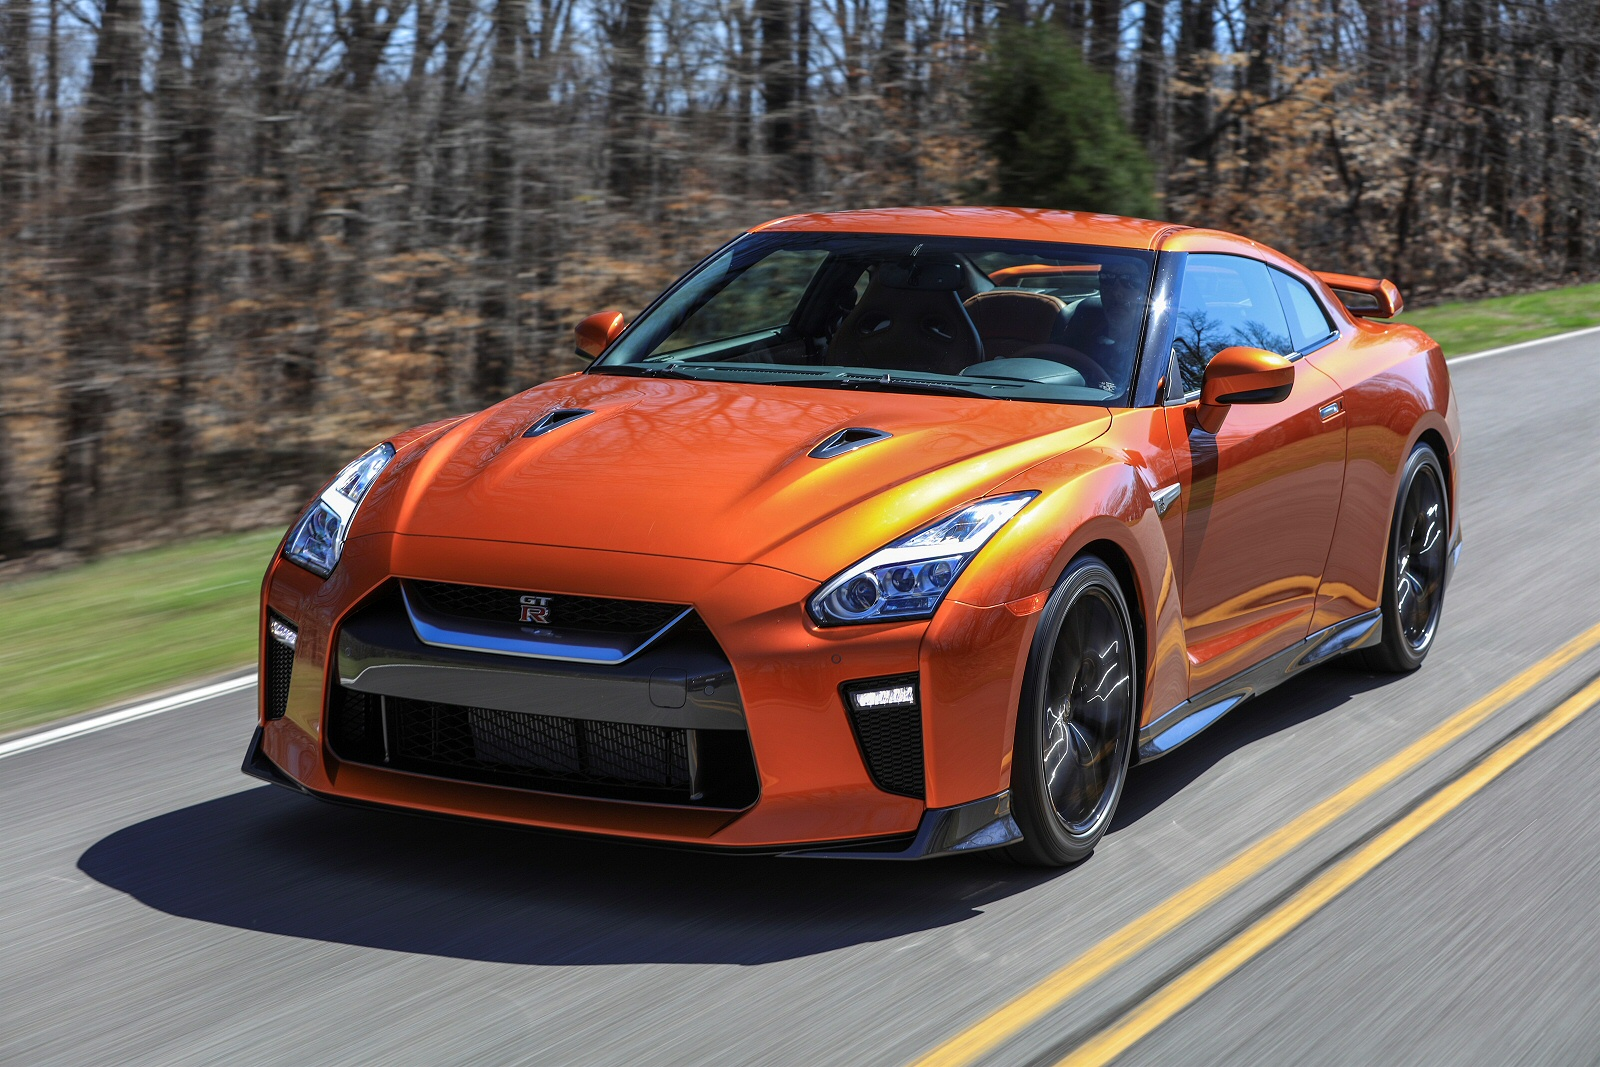 Attractive ... 3.8 Track Edition Engineered By Nismo 2Dr Auto Petrol Coupe ...